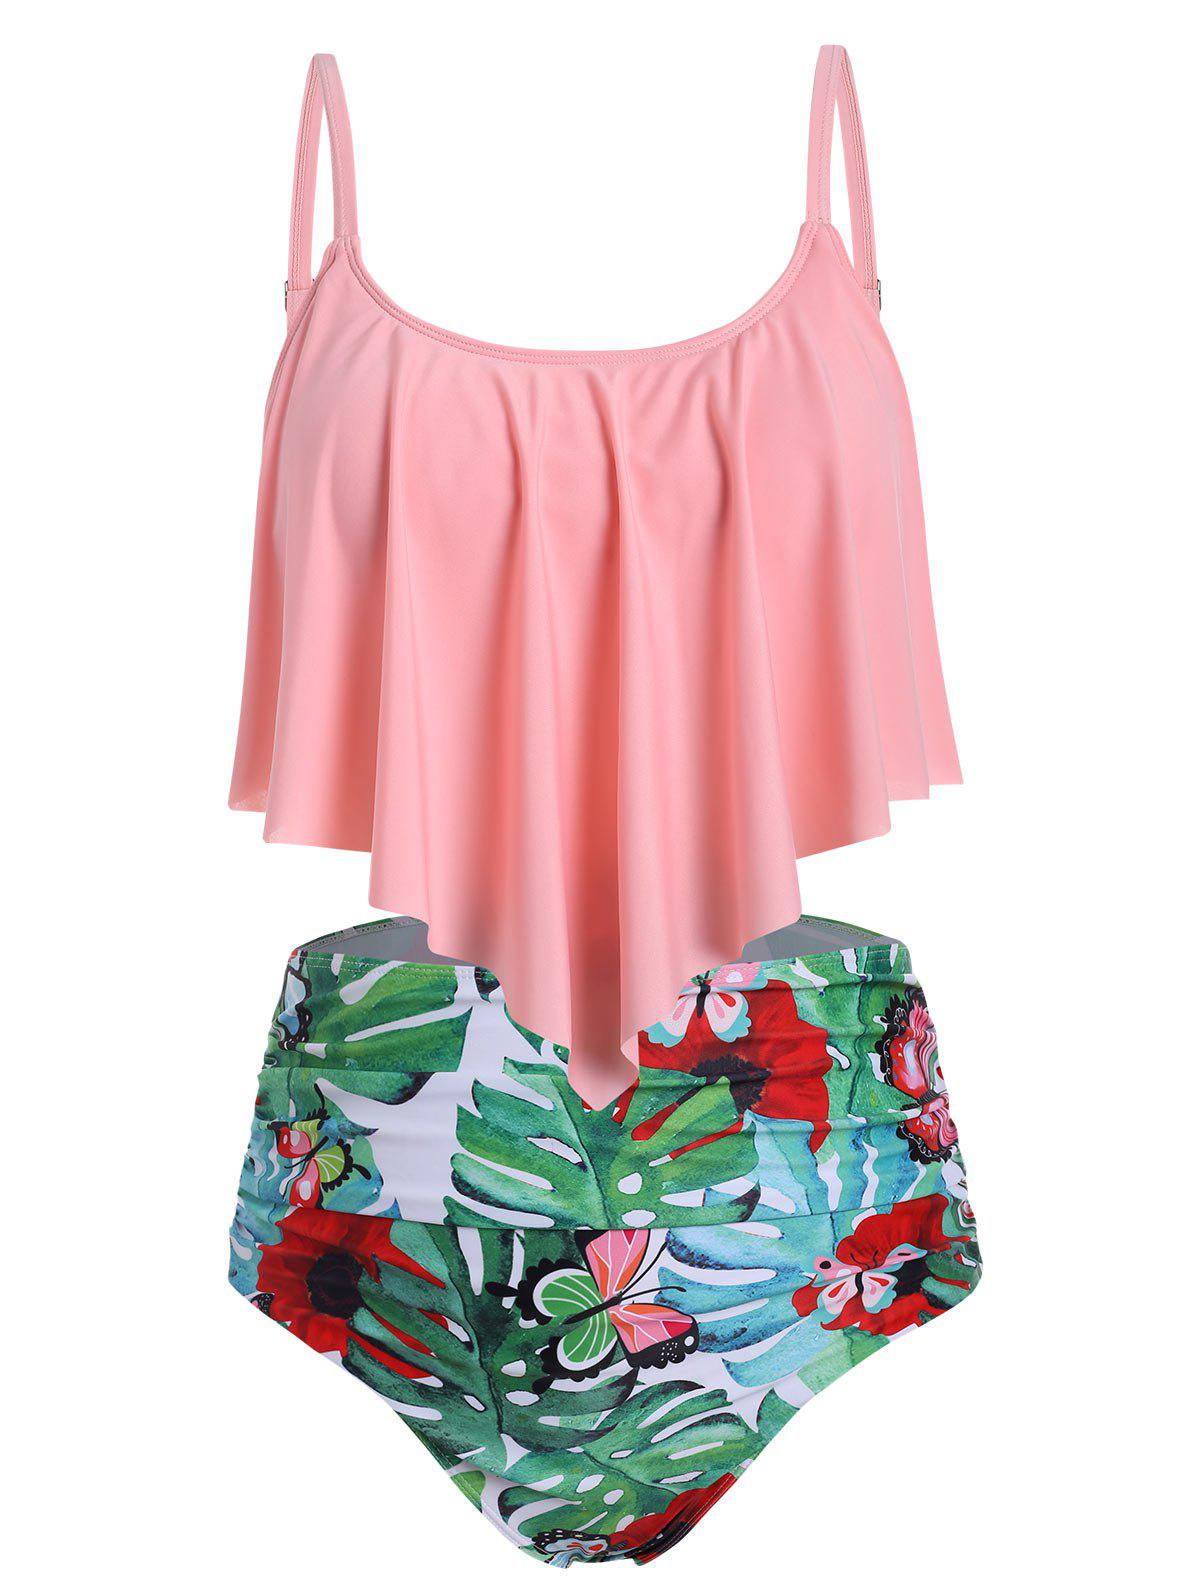 Plus Size Ruffled Palm Print Ruched Tankini Swimsuit - multicolor A 5X